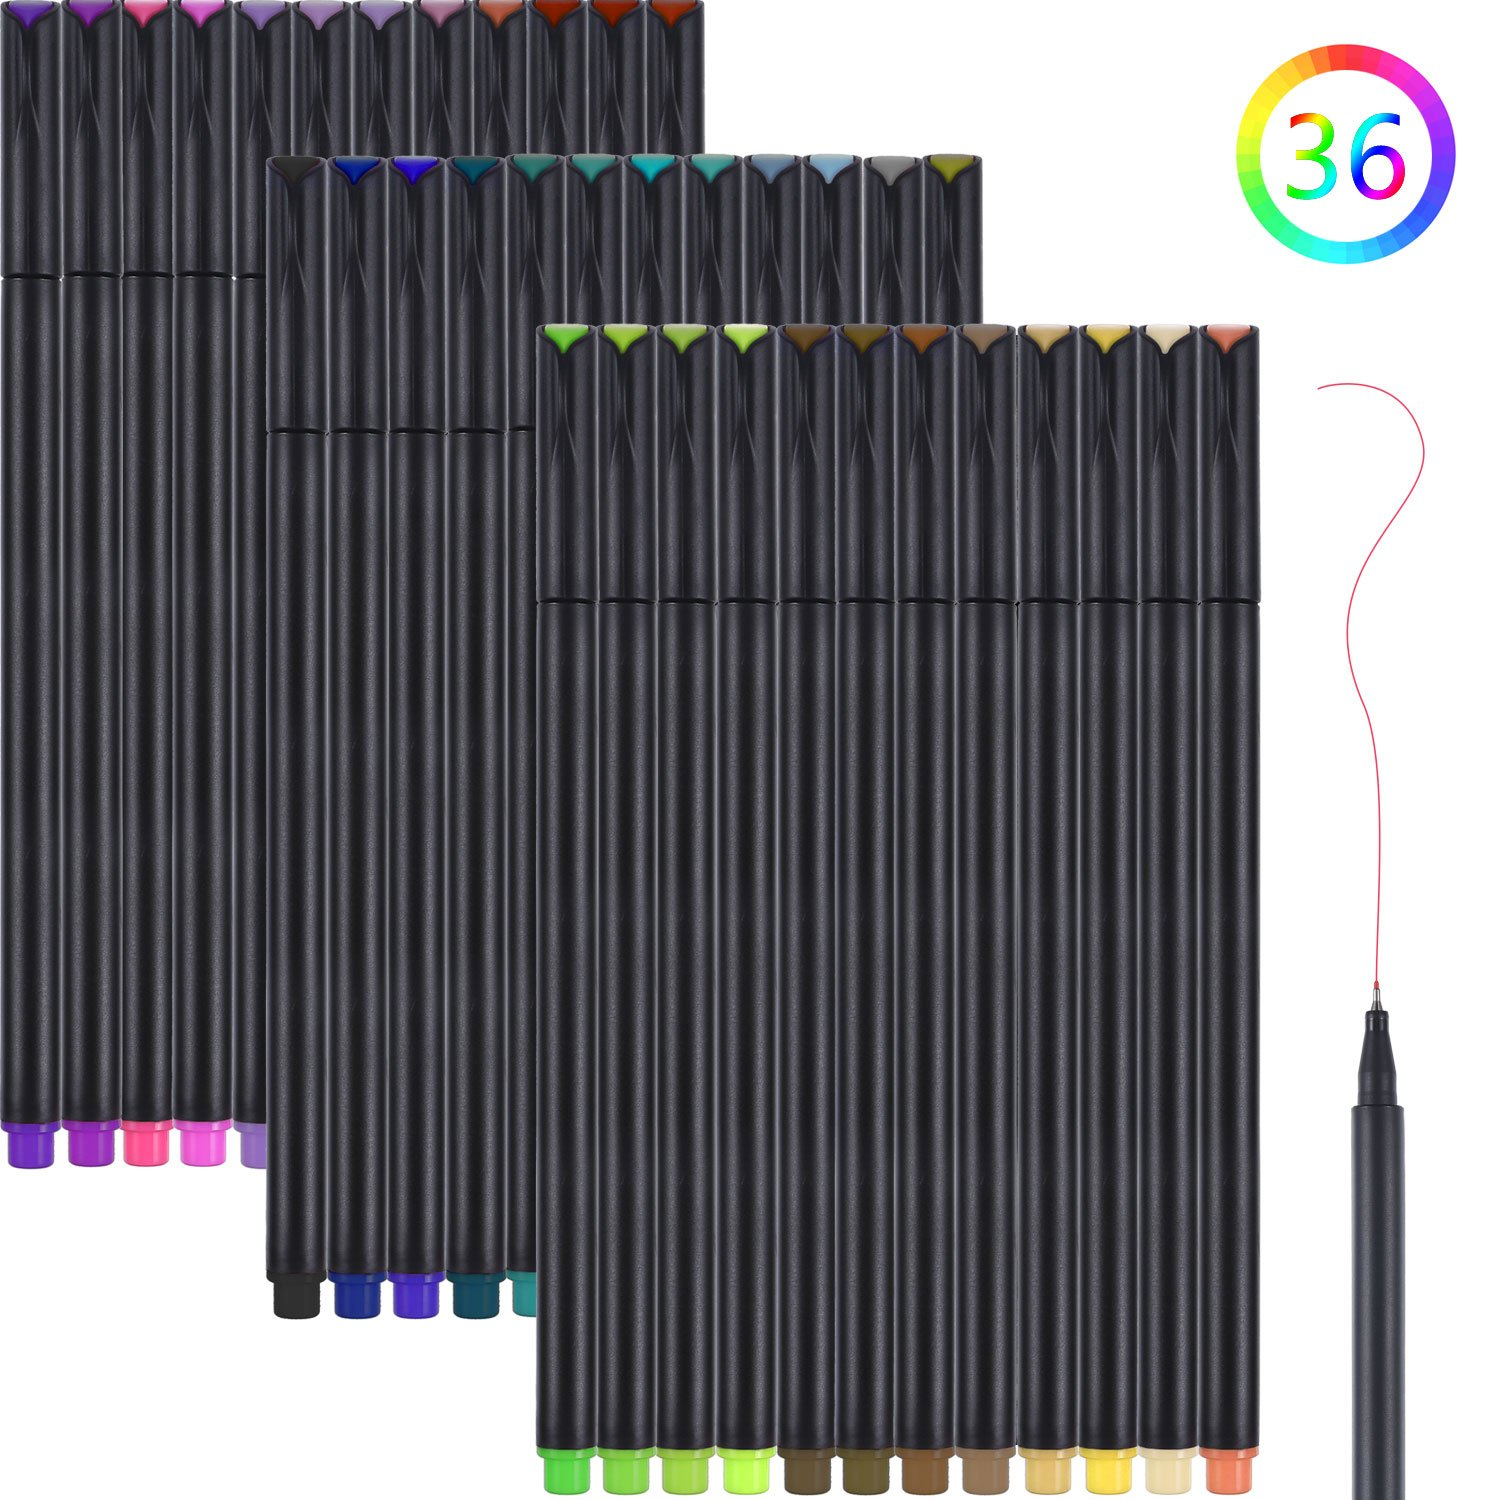 36 Pieces Fineliner Color Pen Set, TOODOO 0.38 mm Colored Sketch Drawing Pen, Porous Fine Point Markers for Bullet Journal and Note Taking without Bleeding Paper